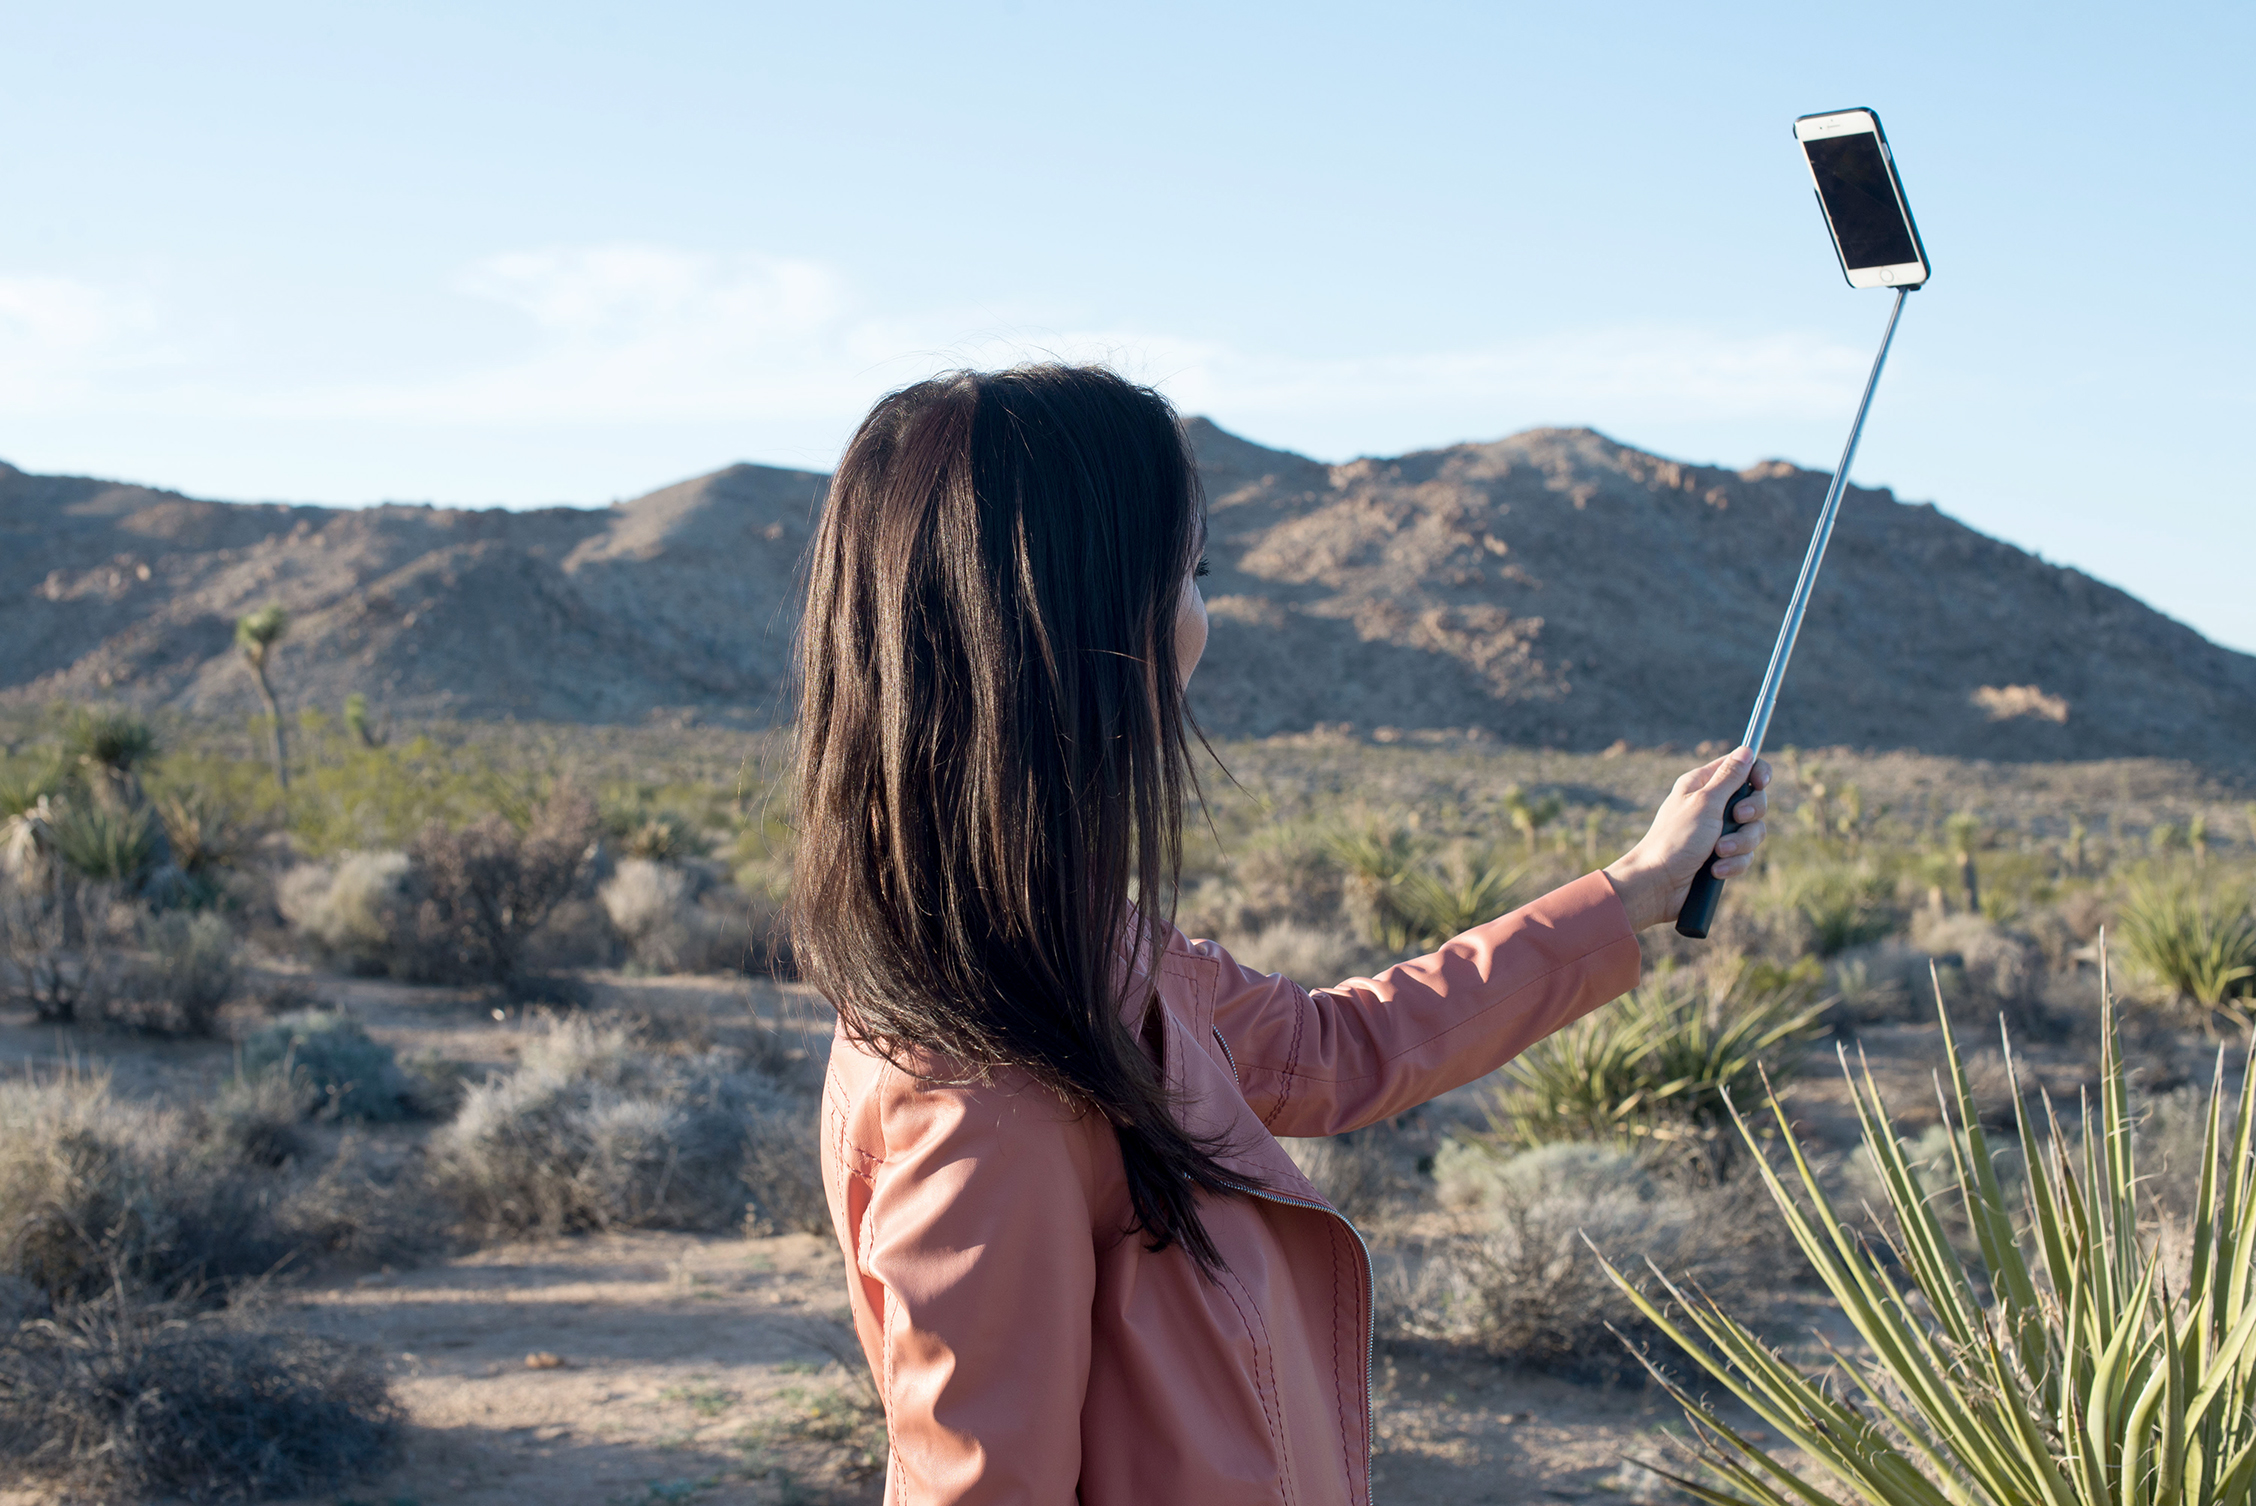 Use it as a selfie stick!